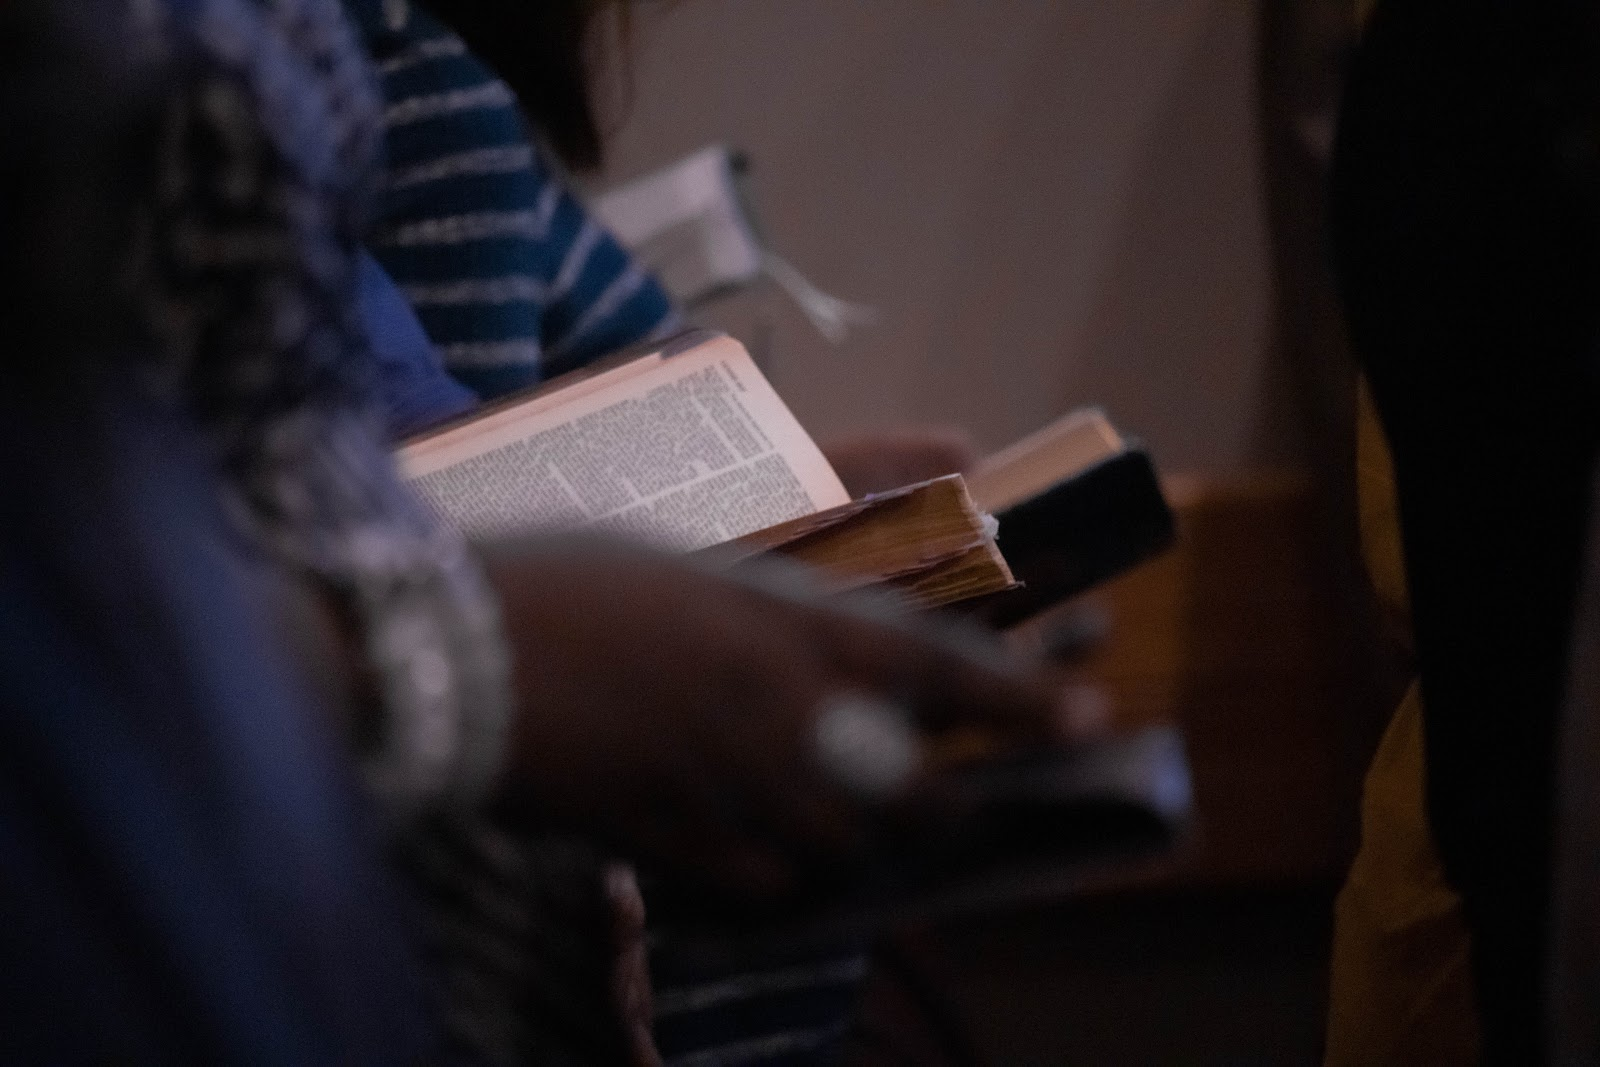 A row of people holding Bibles.